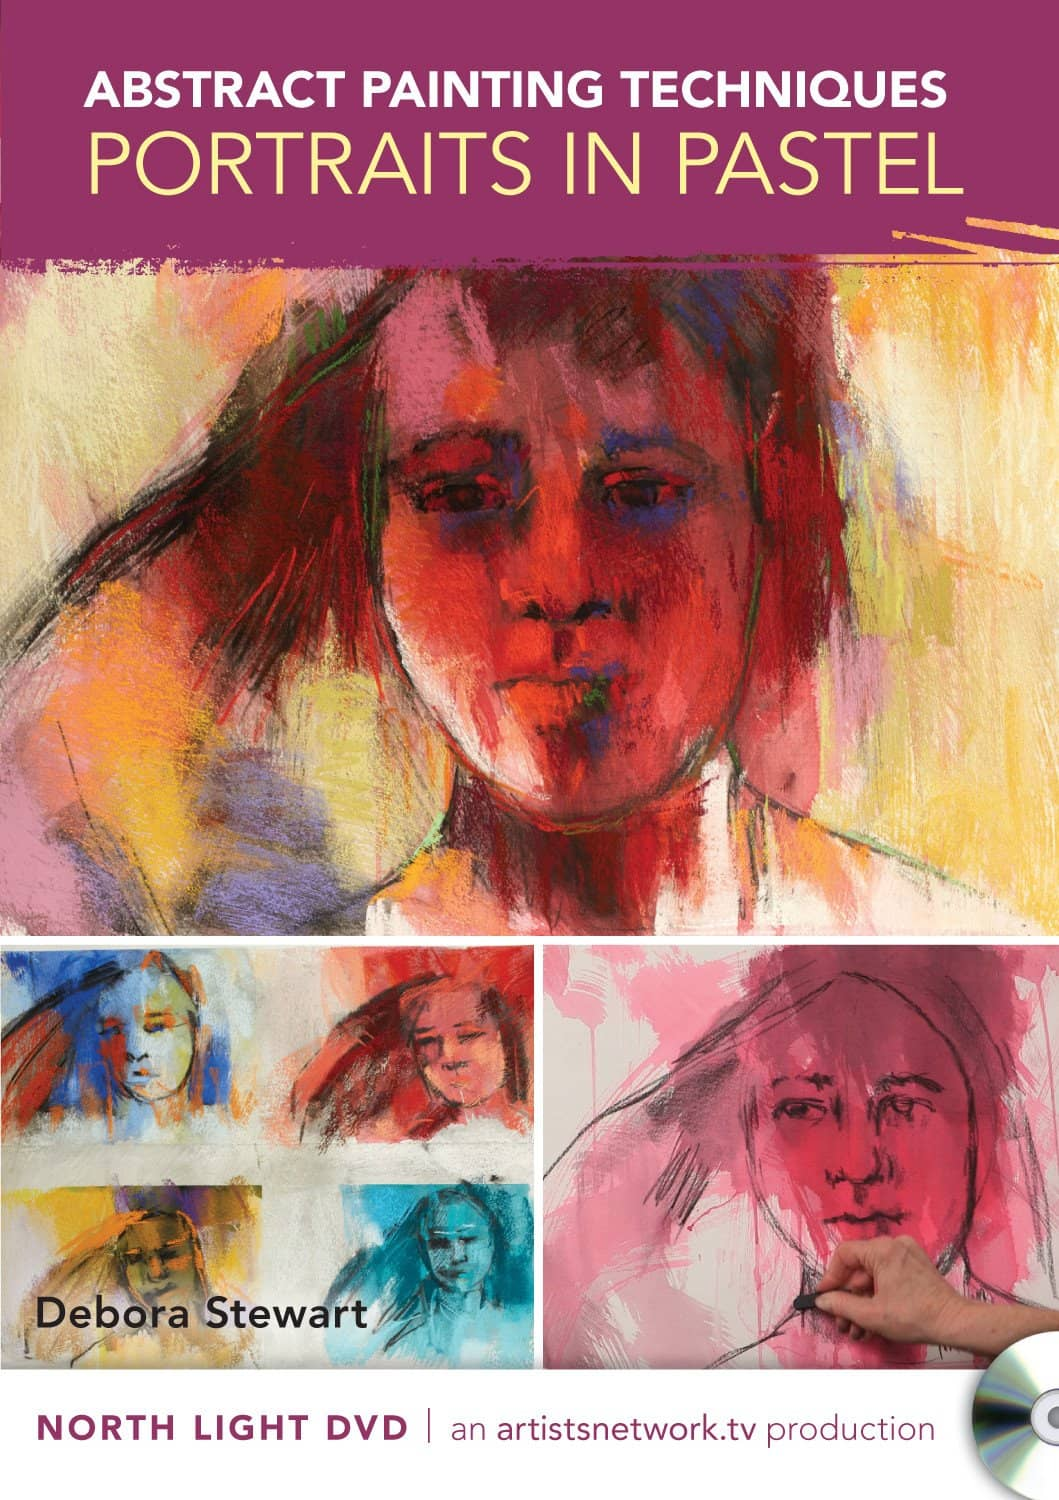 Abstract Painting Techniques - Portraits in Pastel with Debora Stewart